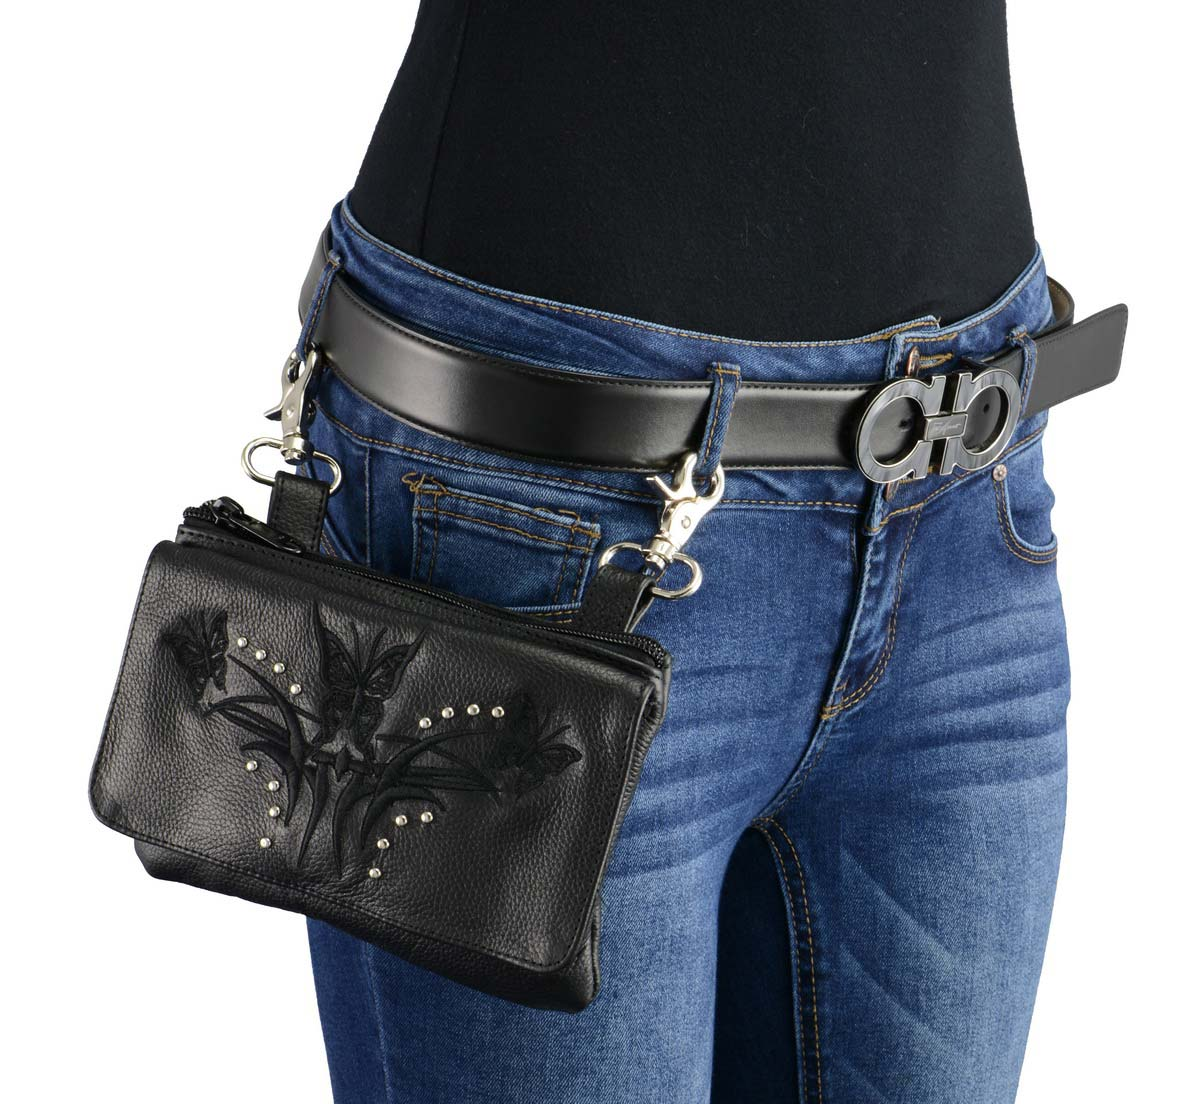 Milwaukee Leather MP8851 Women's Black Leather Multi Pocket Belt Bag